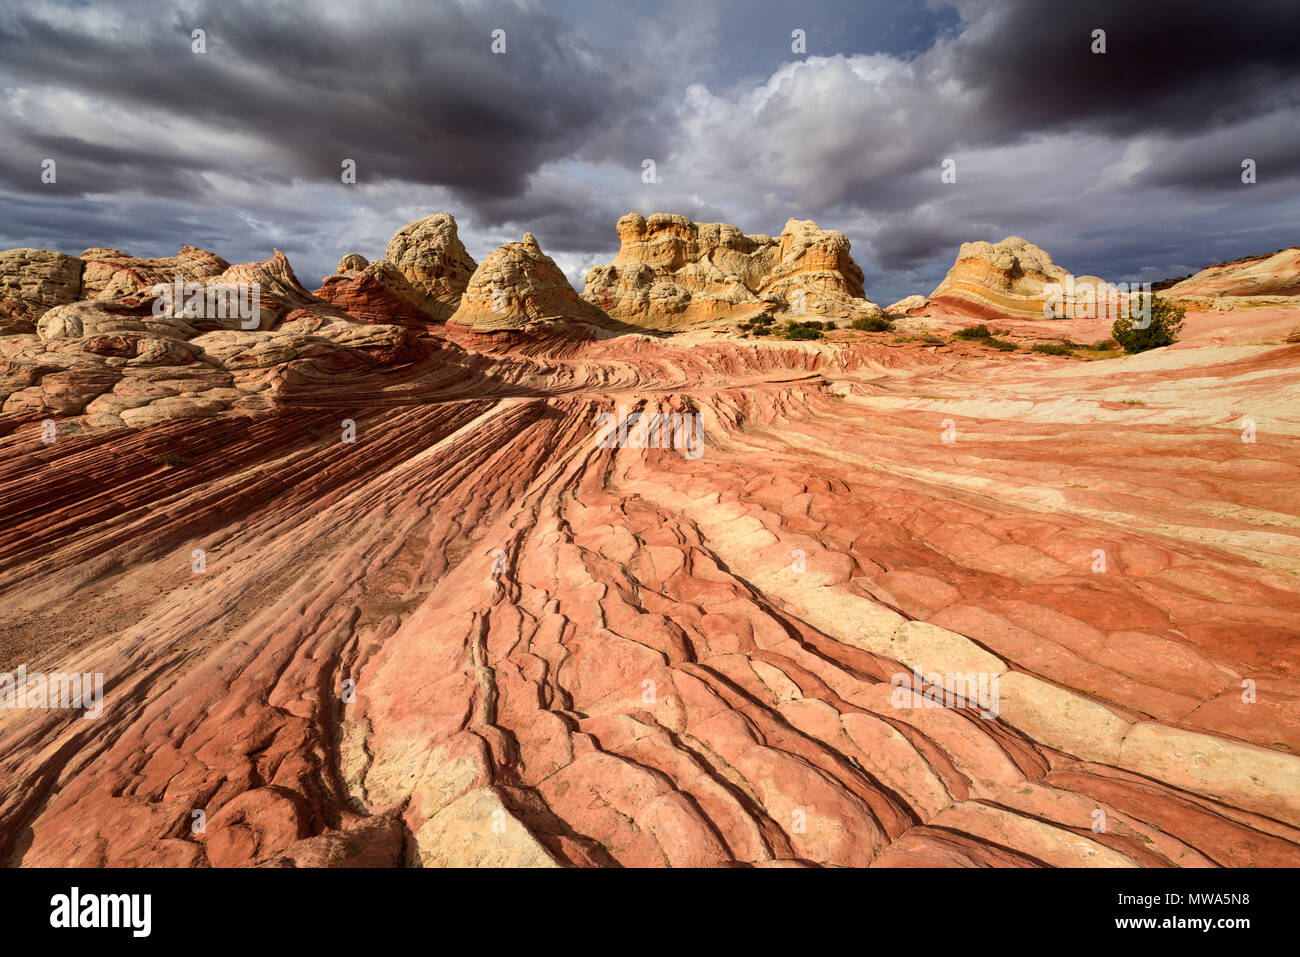 Unique and amazing rock formations in the White Pocket of the Pariah Plateau in Northern Arizona in the Vermillion Cliffs National Monument. - Stock Image